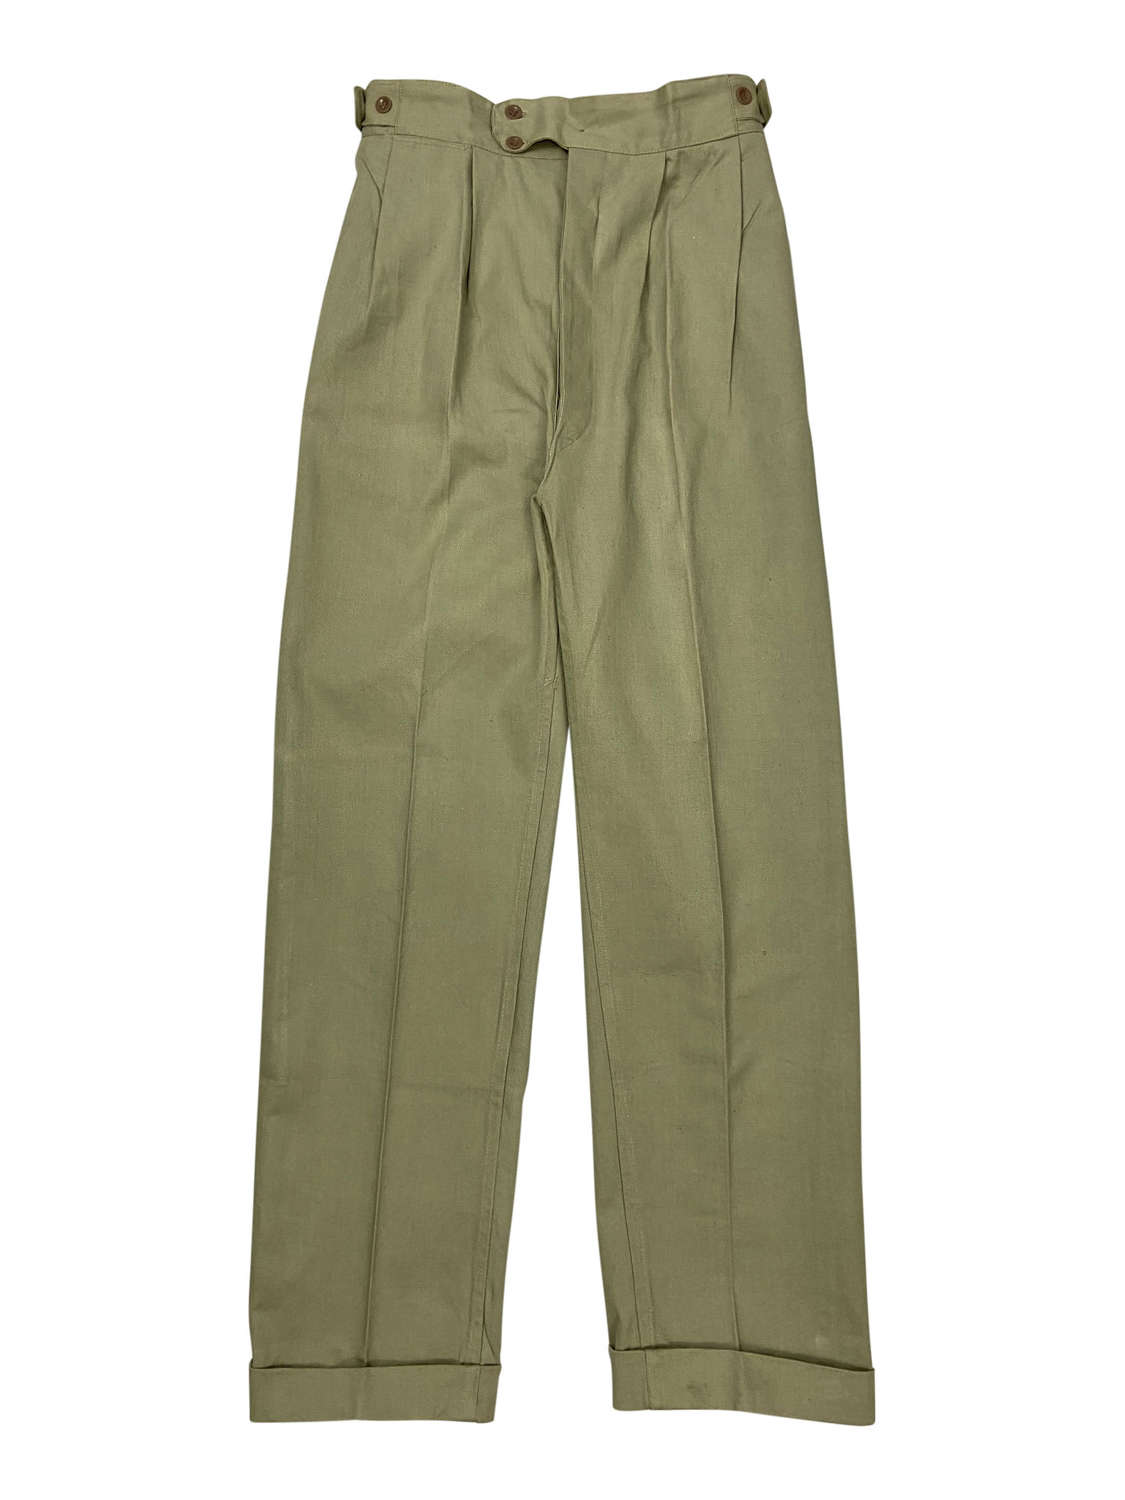 Original Early 1960s British Cotton Drill Trousers by 'Selrig'